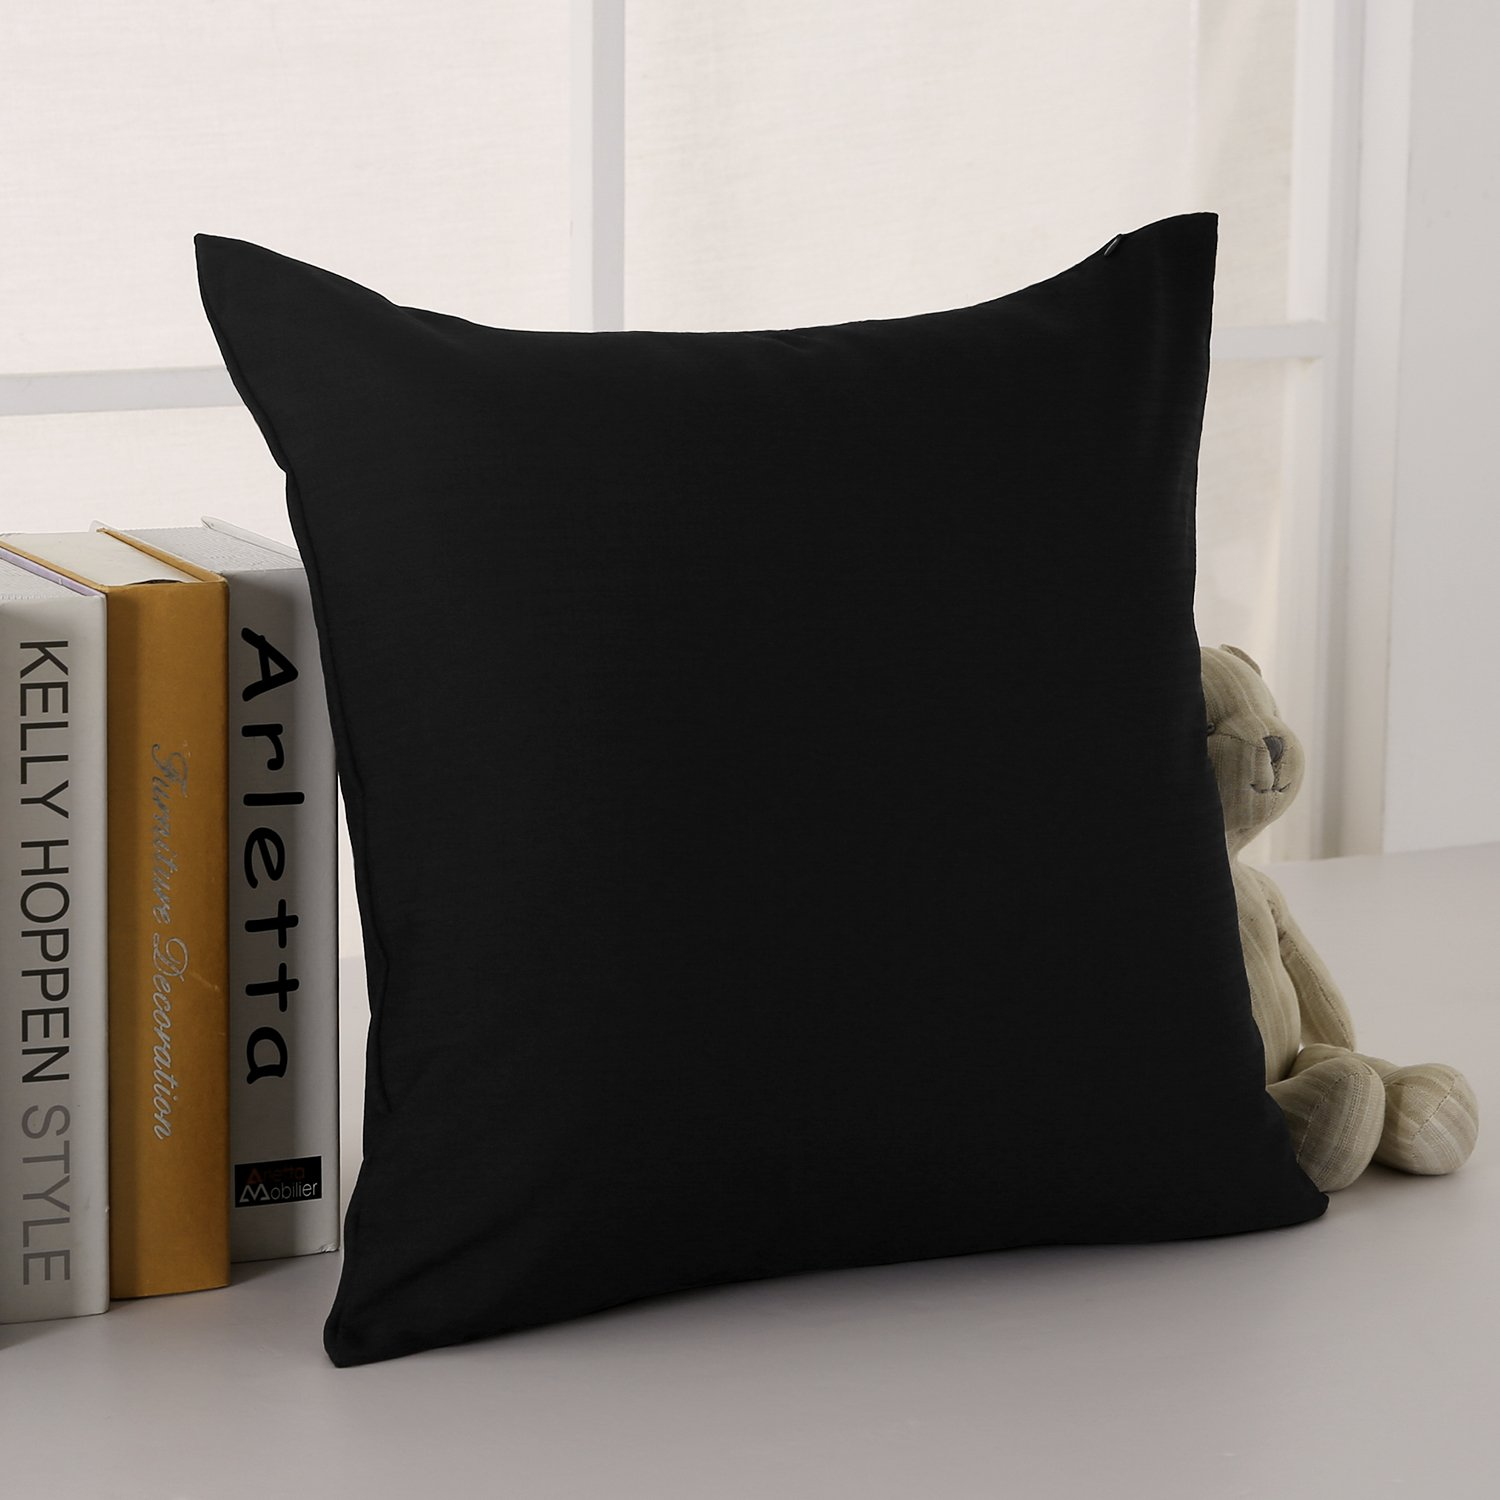 CASE ONLY, NO Insert SYNCHKG070501 Deconovo Faux Linen Cushion Cover with Invisible Zipper Throw Pillow Cover for Sofa Cushion 18x18 Inch Black 1 PCS